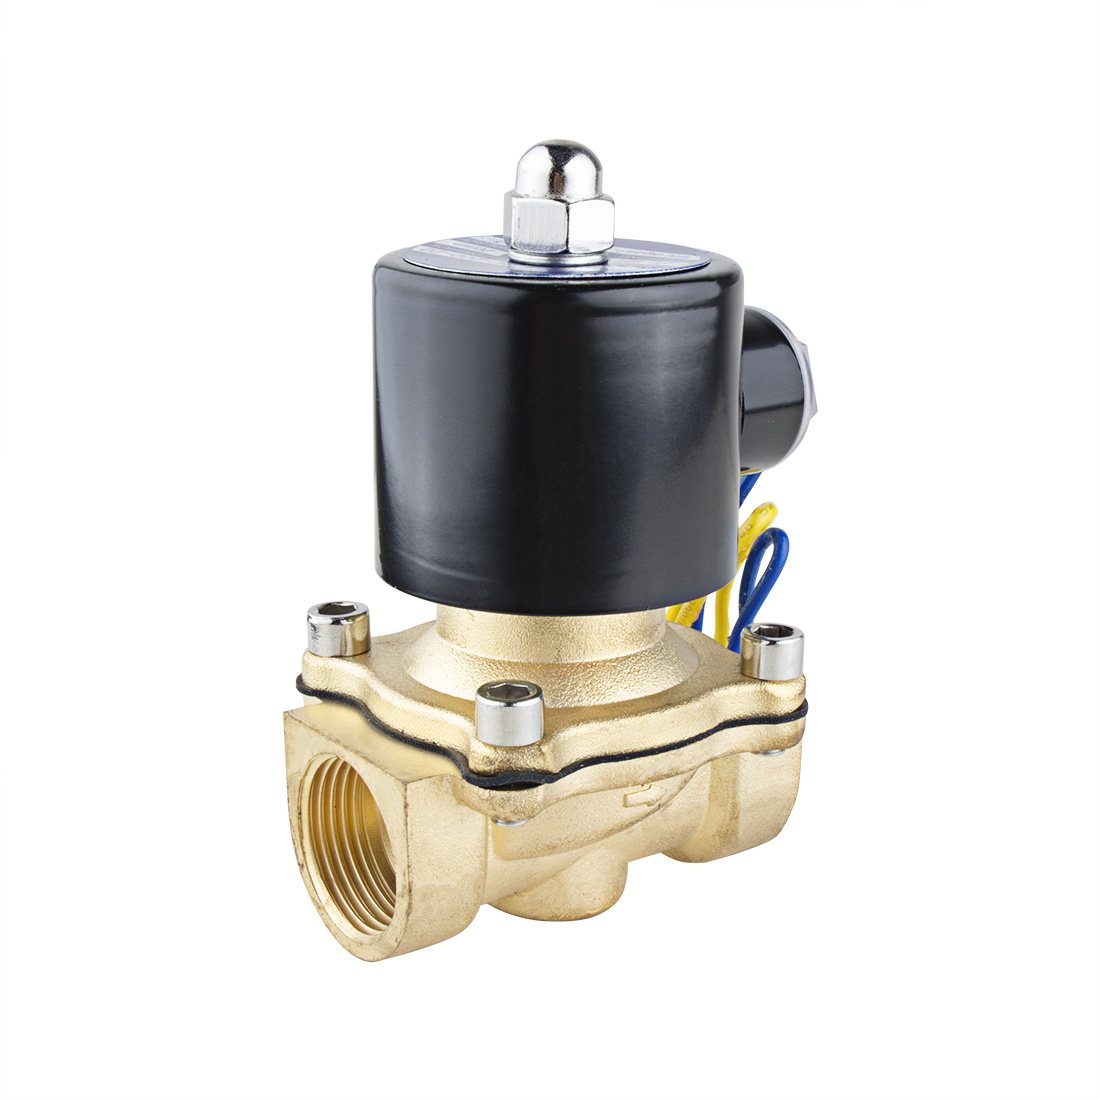 "DC 12V 2W200-20 NPT 3/4"" Female Thread 2 Way N/C Copper Water Solenoid Valve"